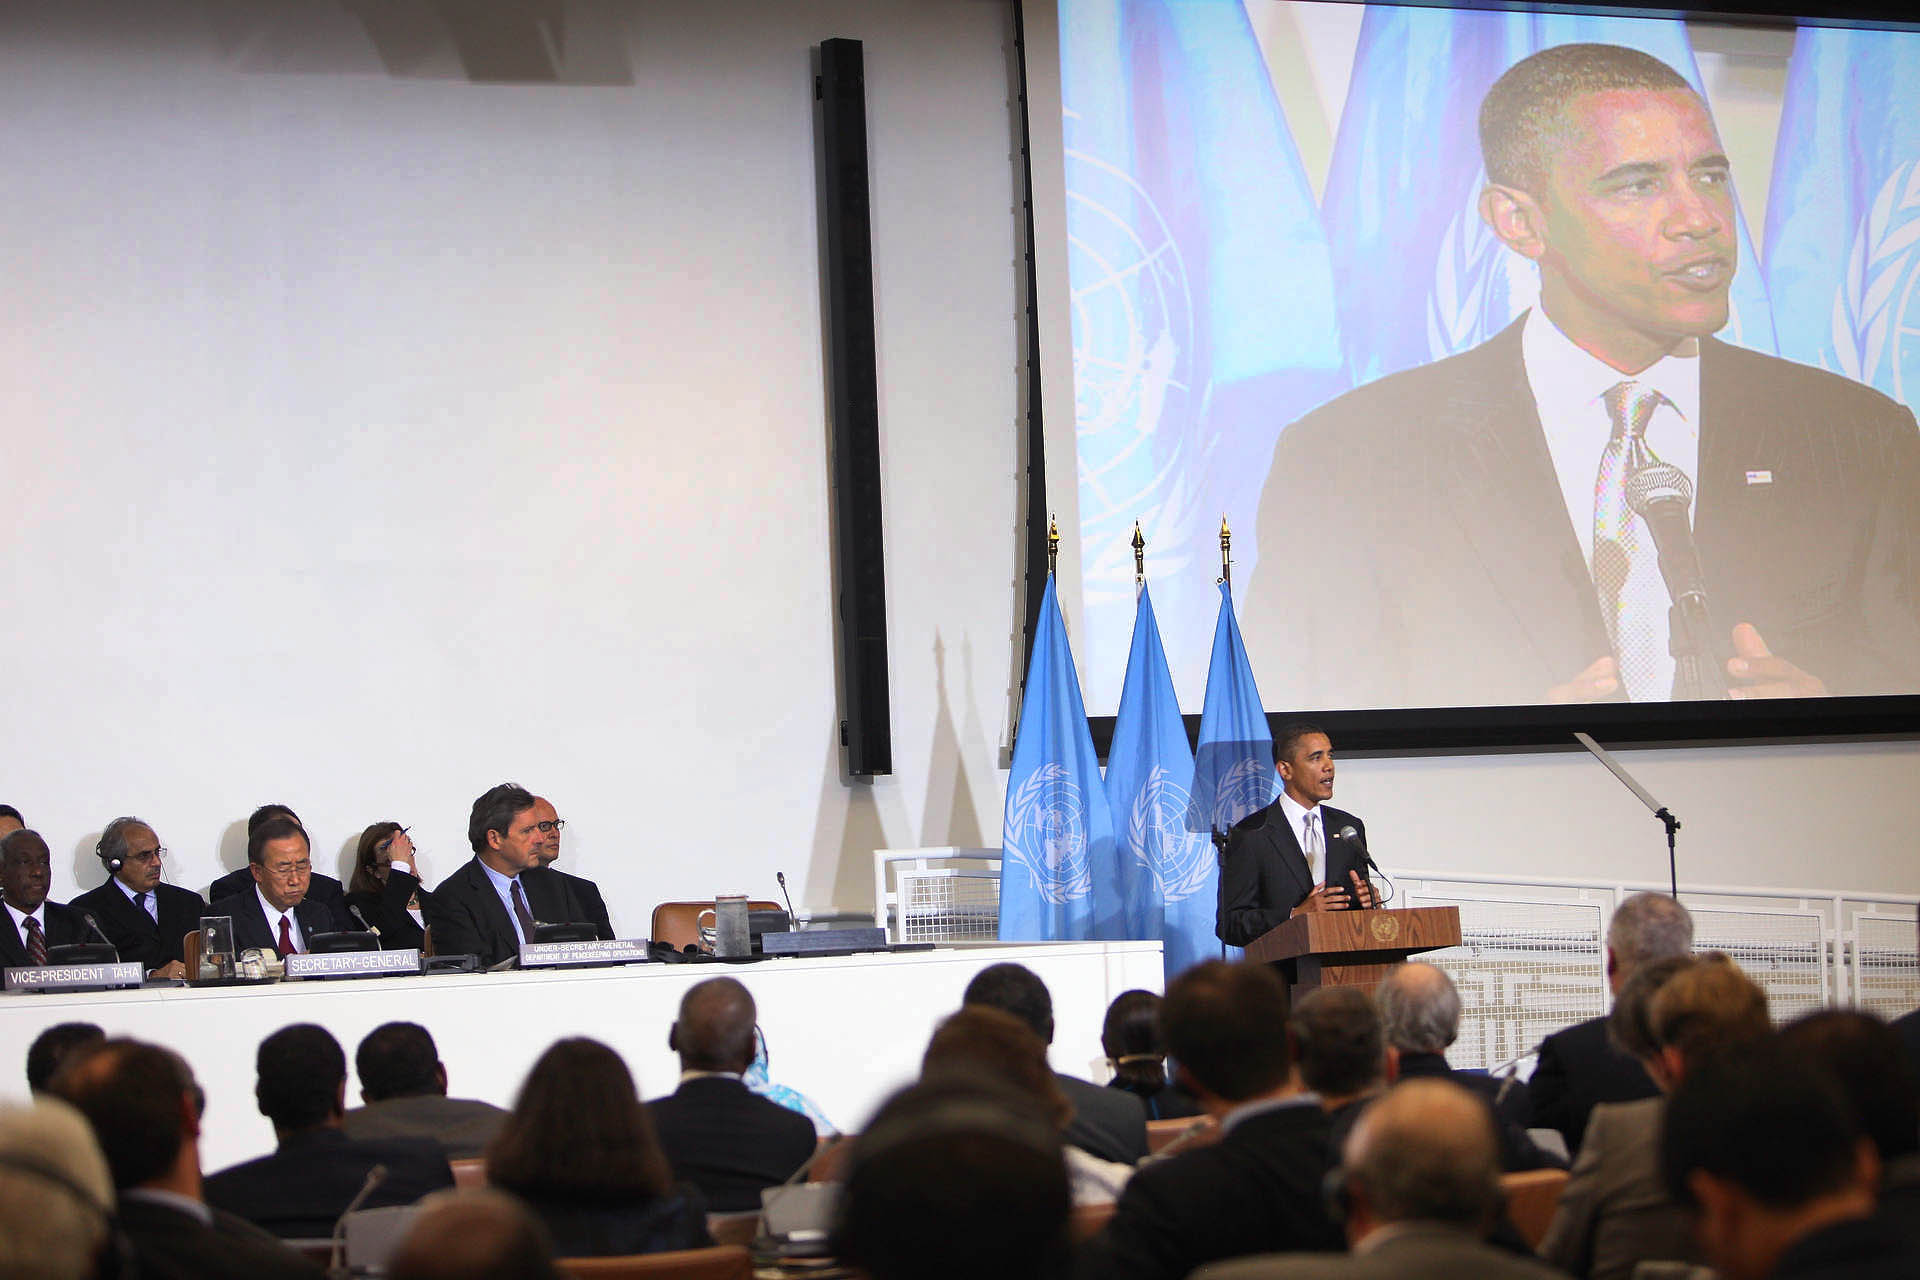 President Barack Obama Speaks at a Ministerial Meeting on Sudan